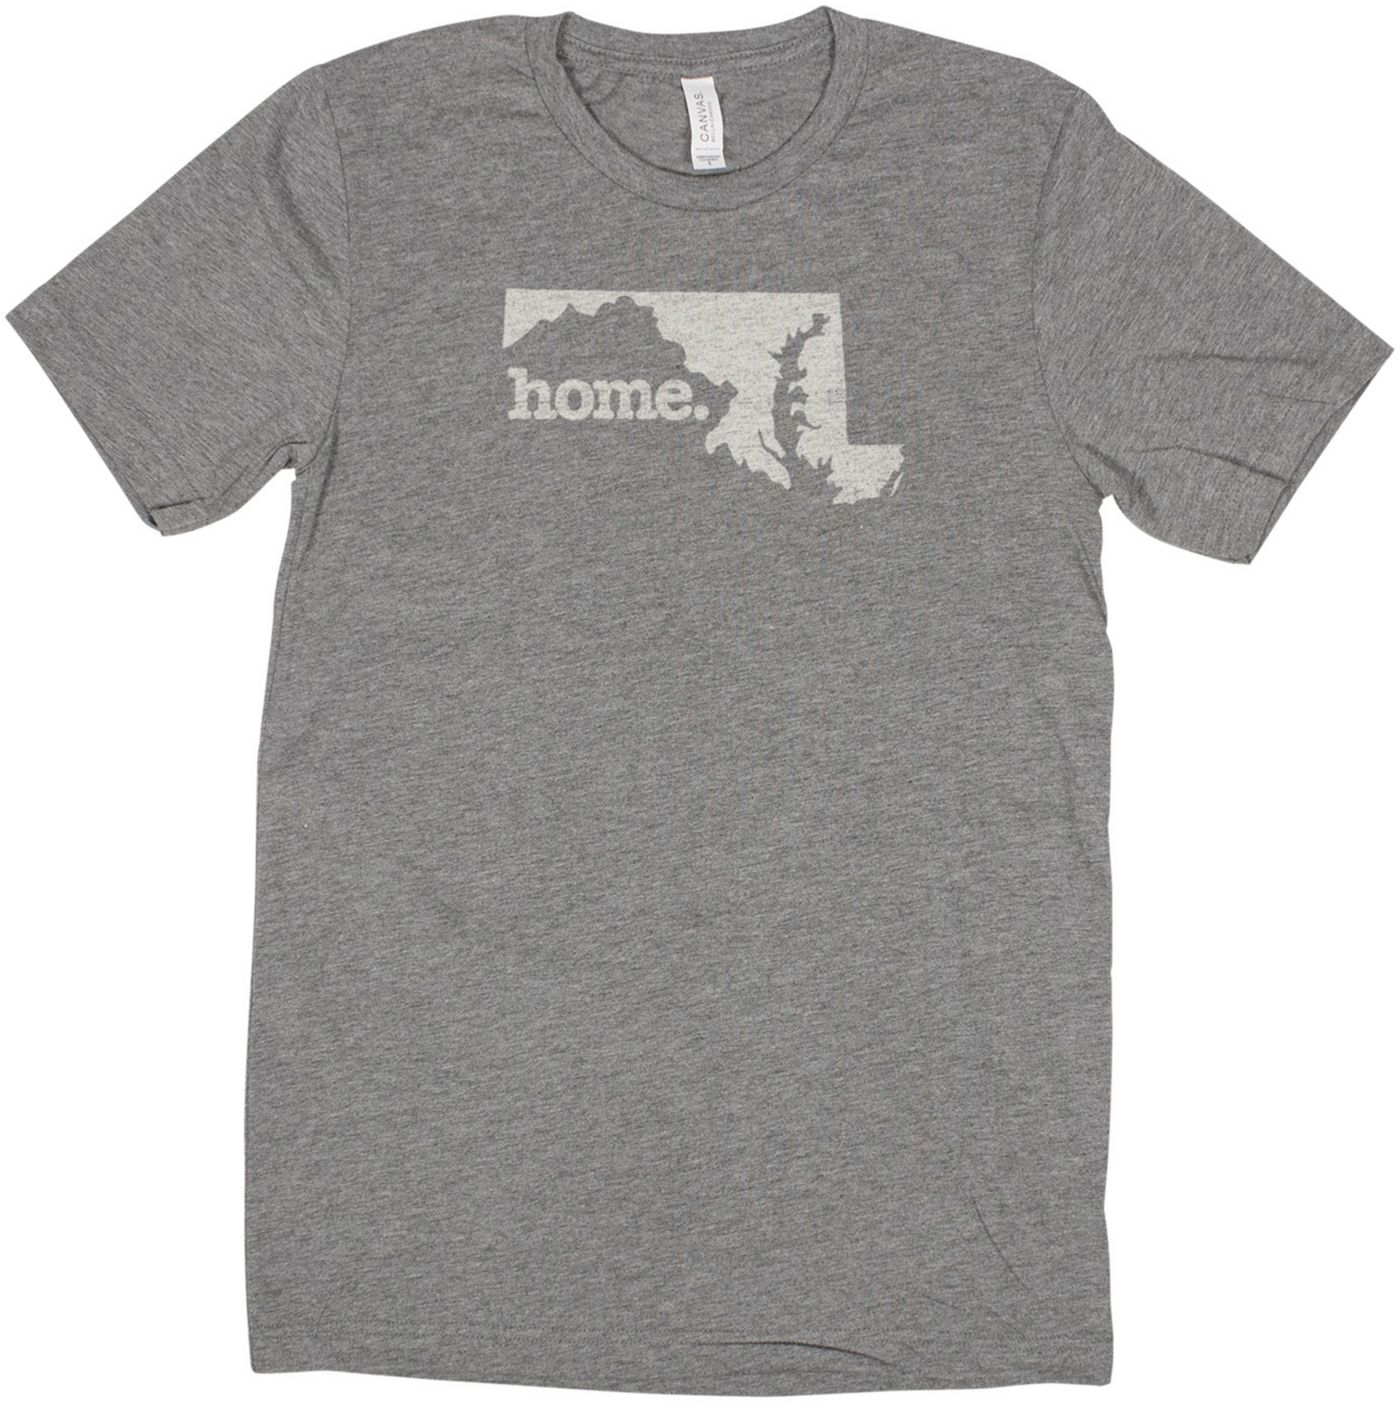 Home State Apparel Men's Home State Maryland Short Sleeve T-Shirt